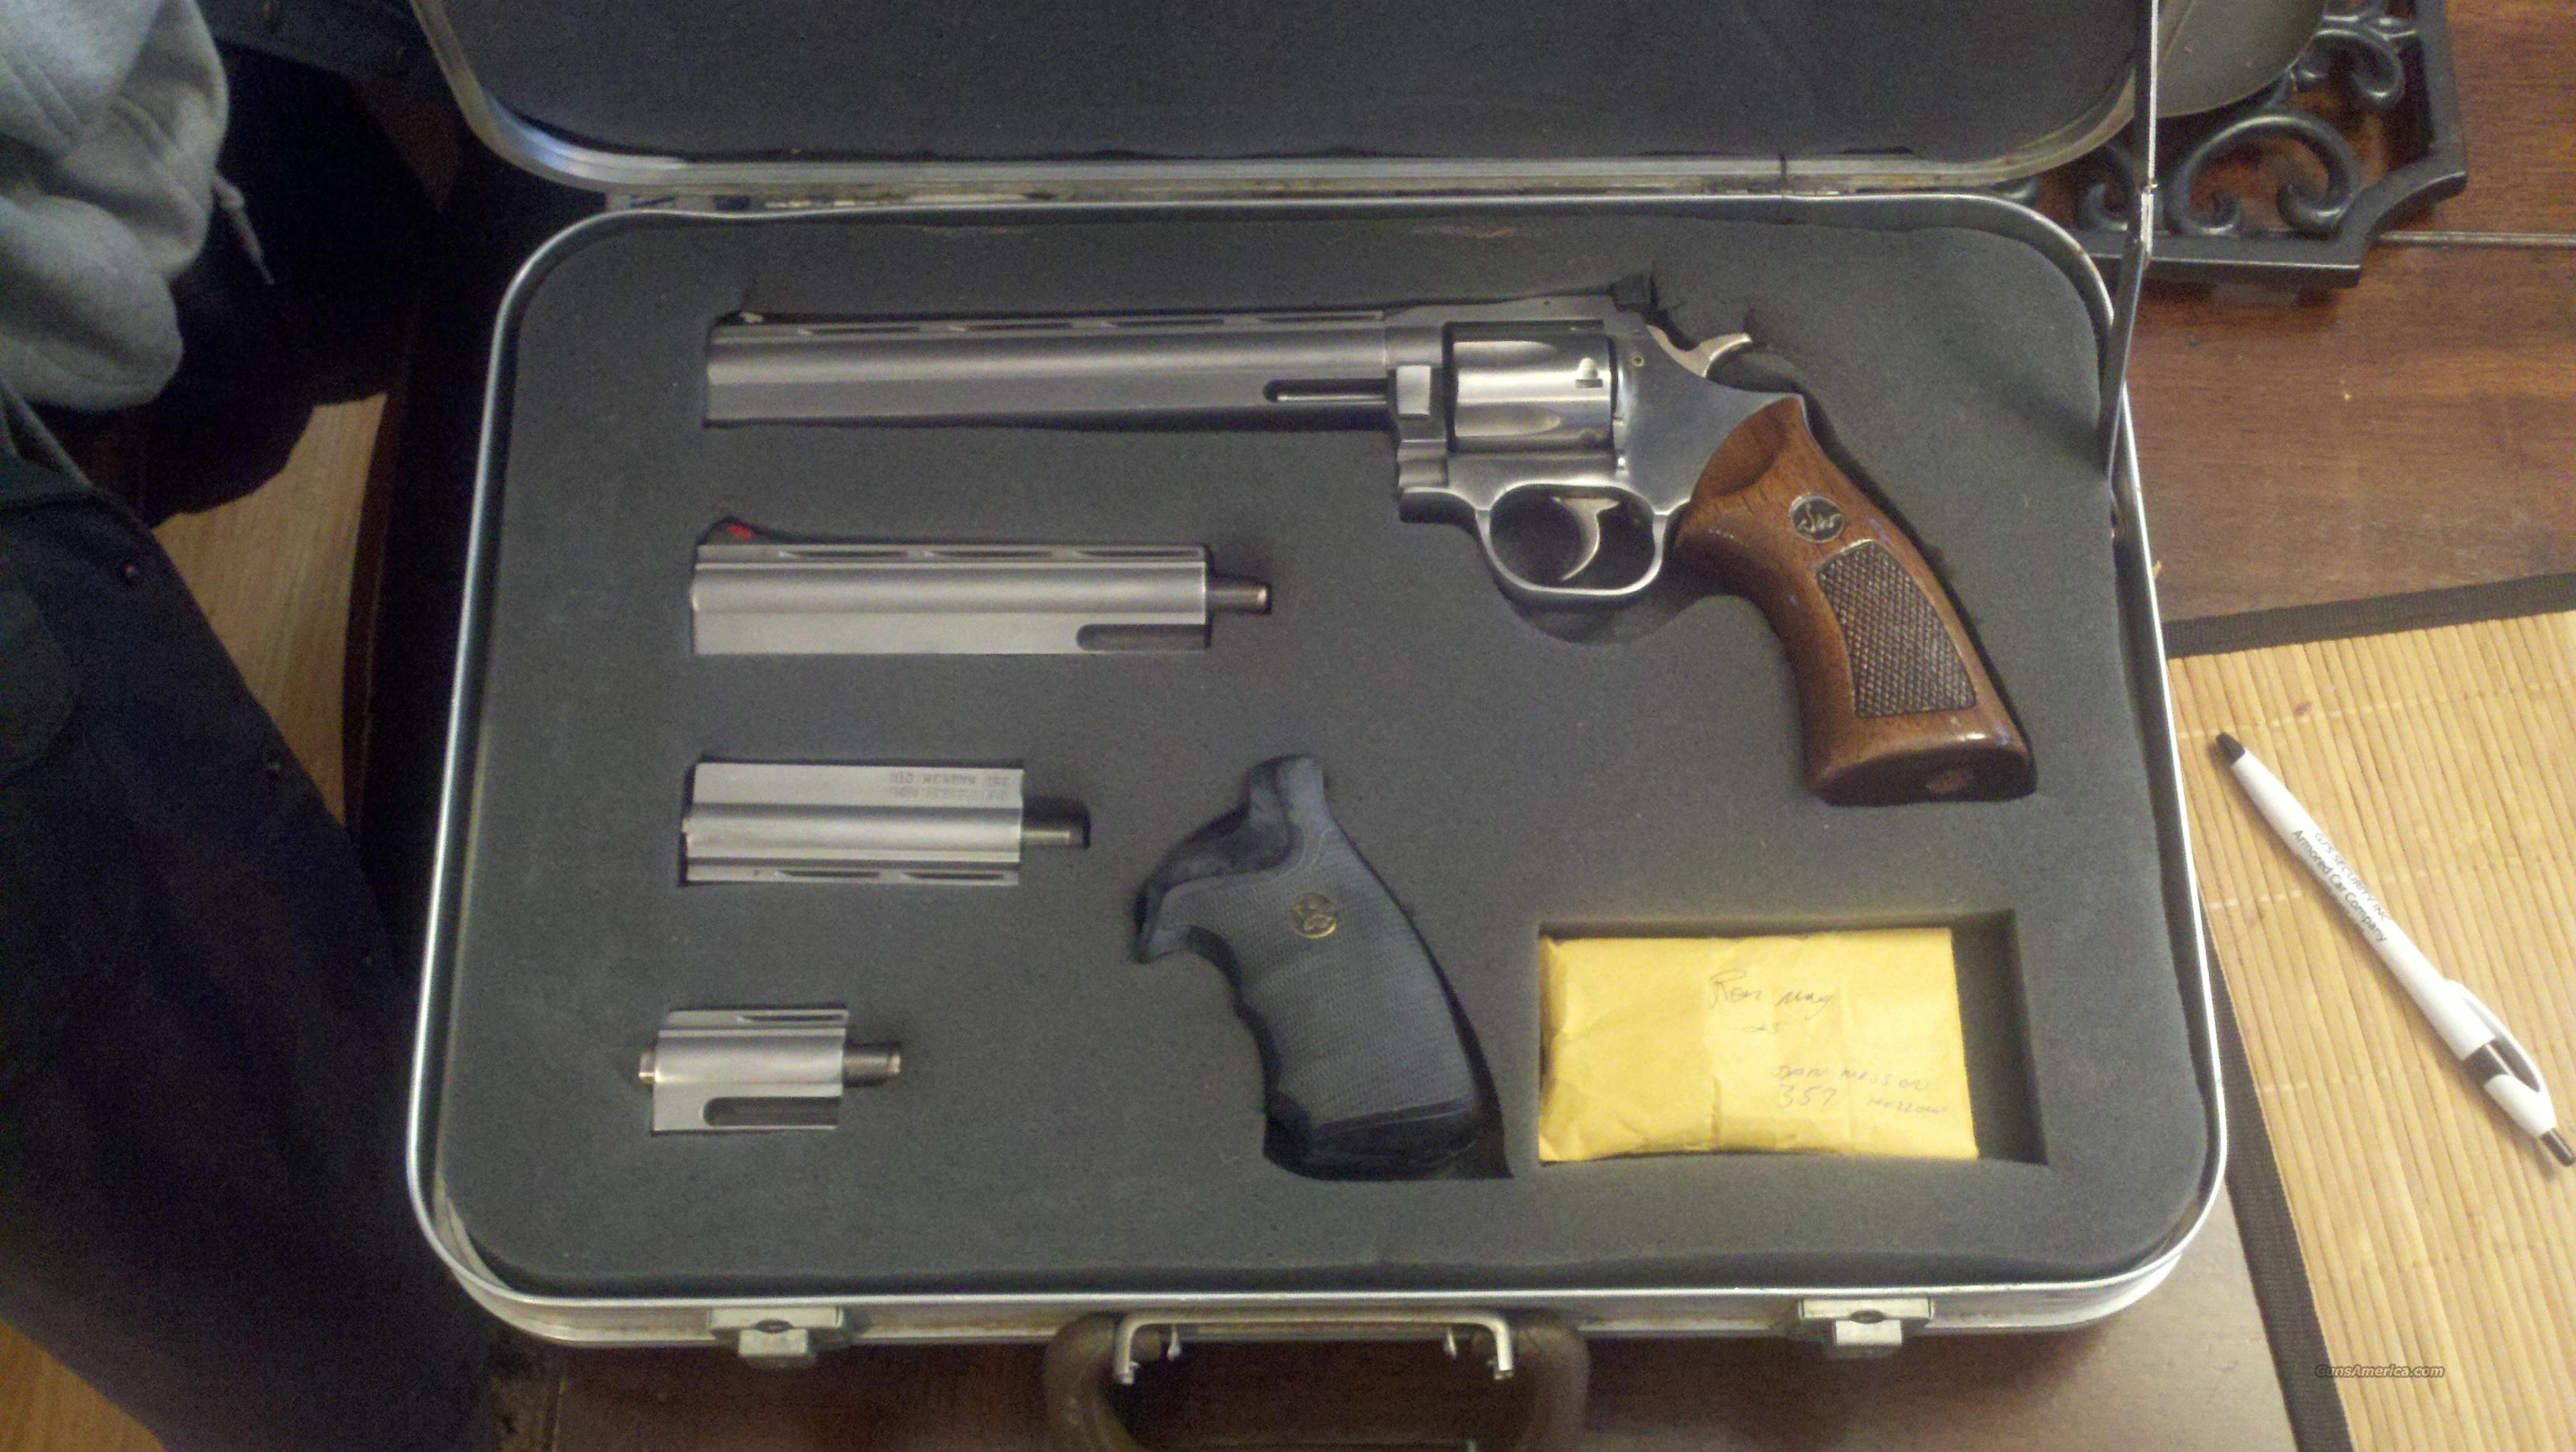 dan wesson .357 magnum stainless pistol pack  Guns > Pistols > Dan Wesson Pistols/Revolvers > Revolvers